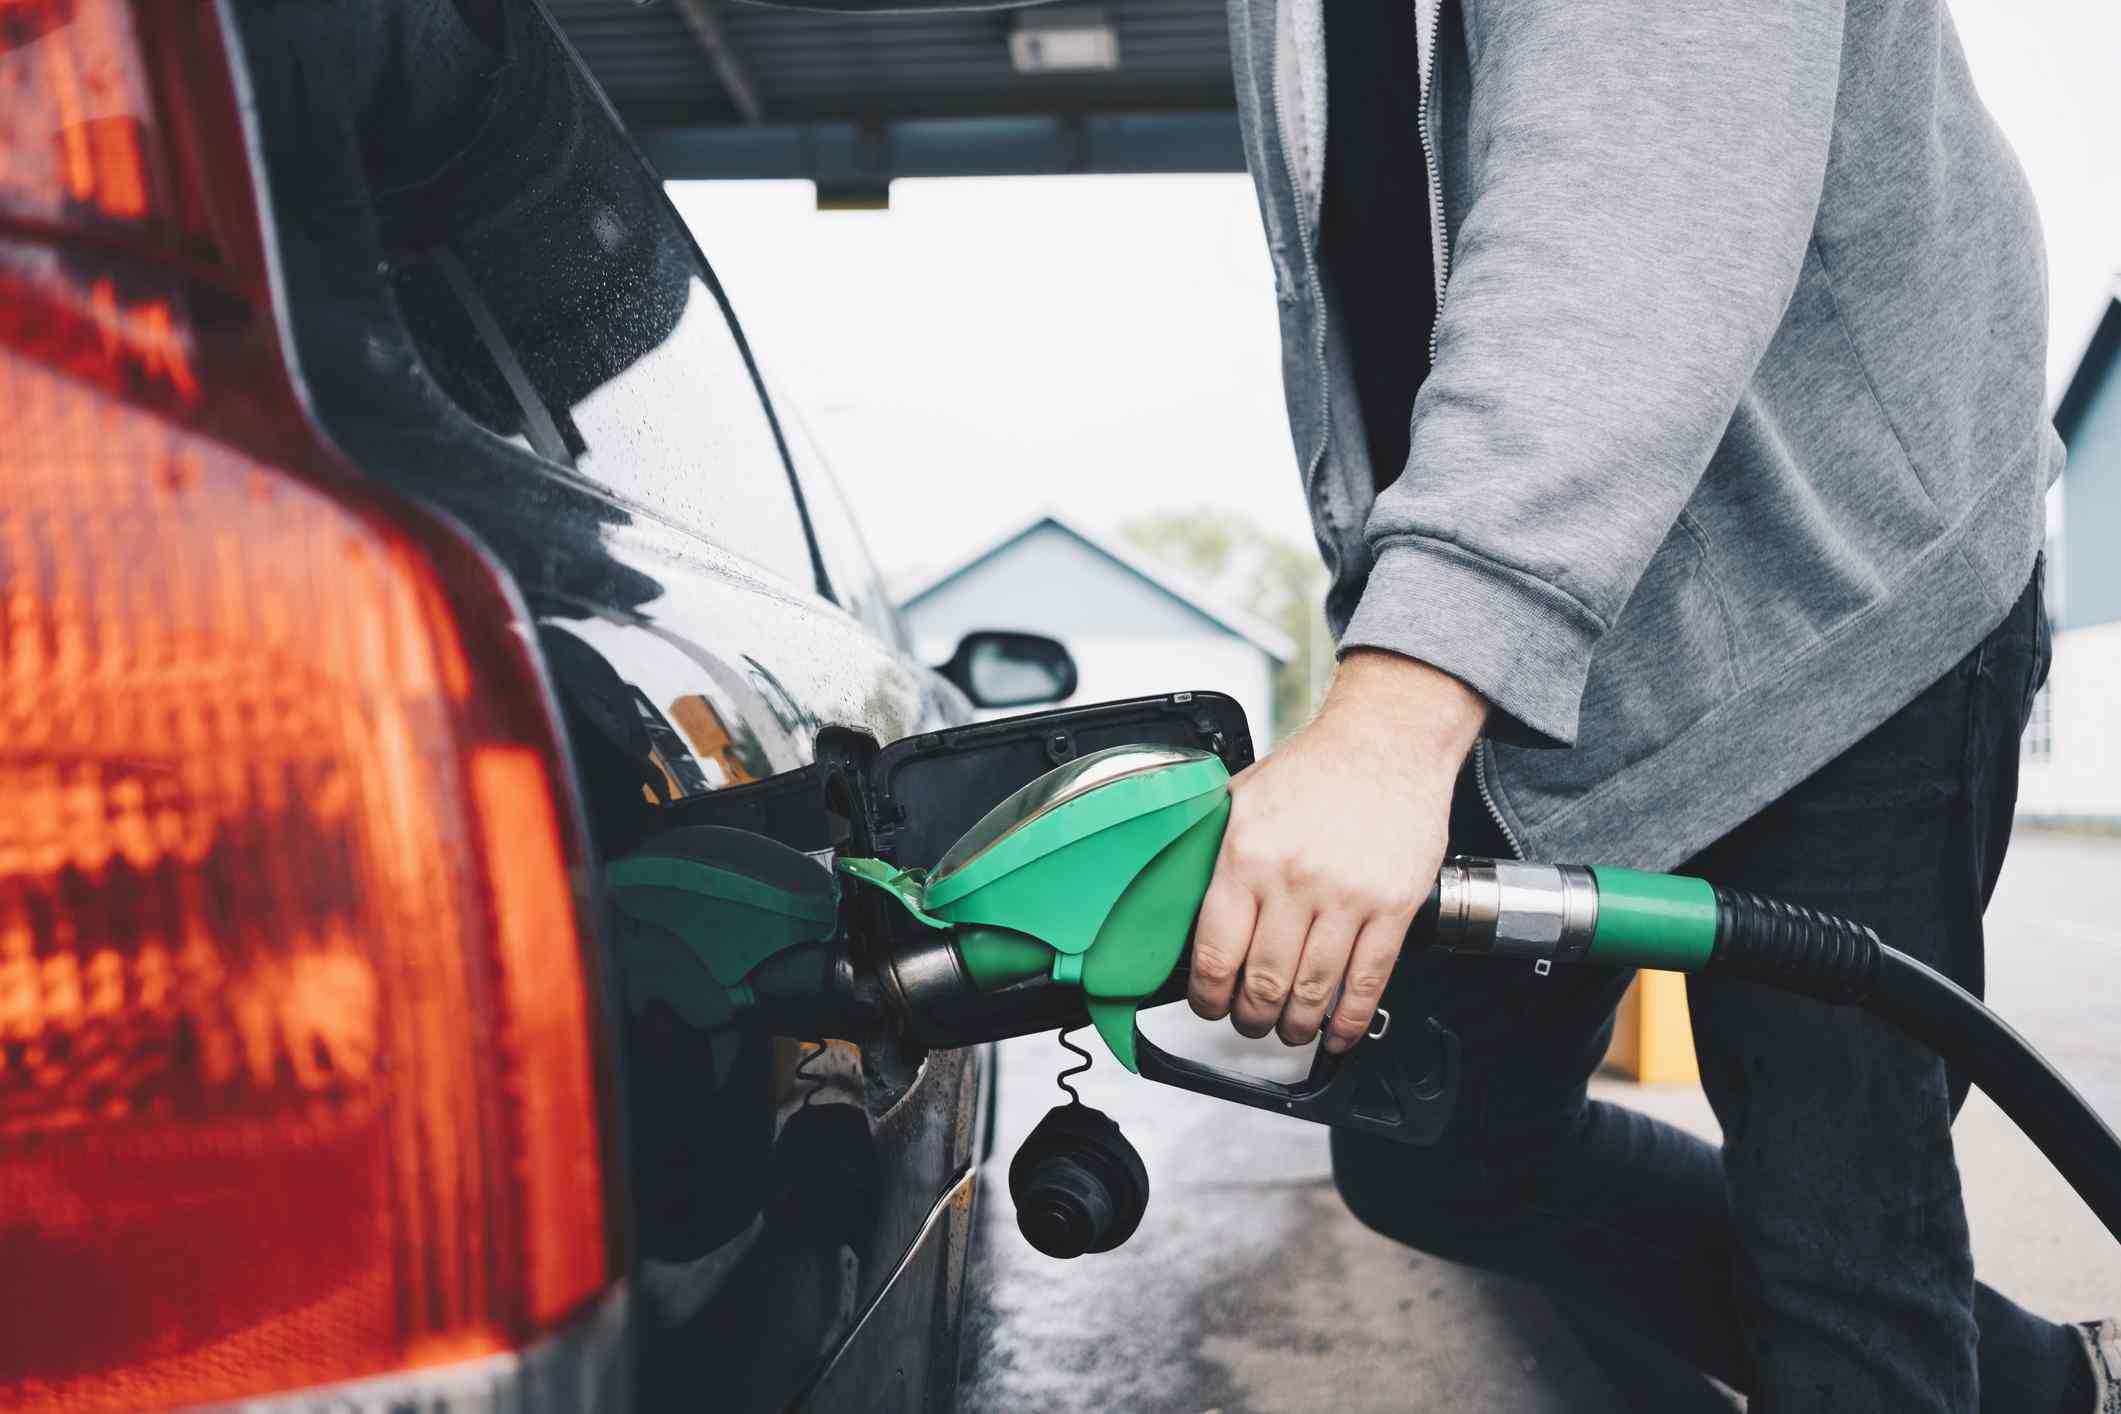 A man putting gas into the tank of his car.